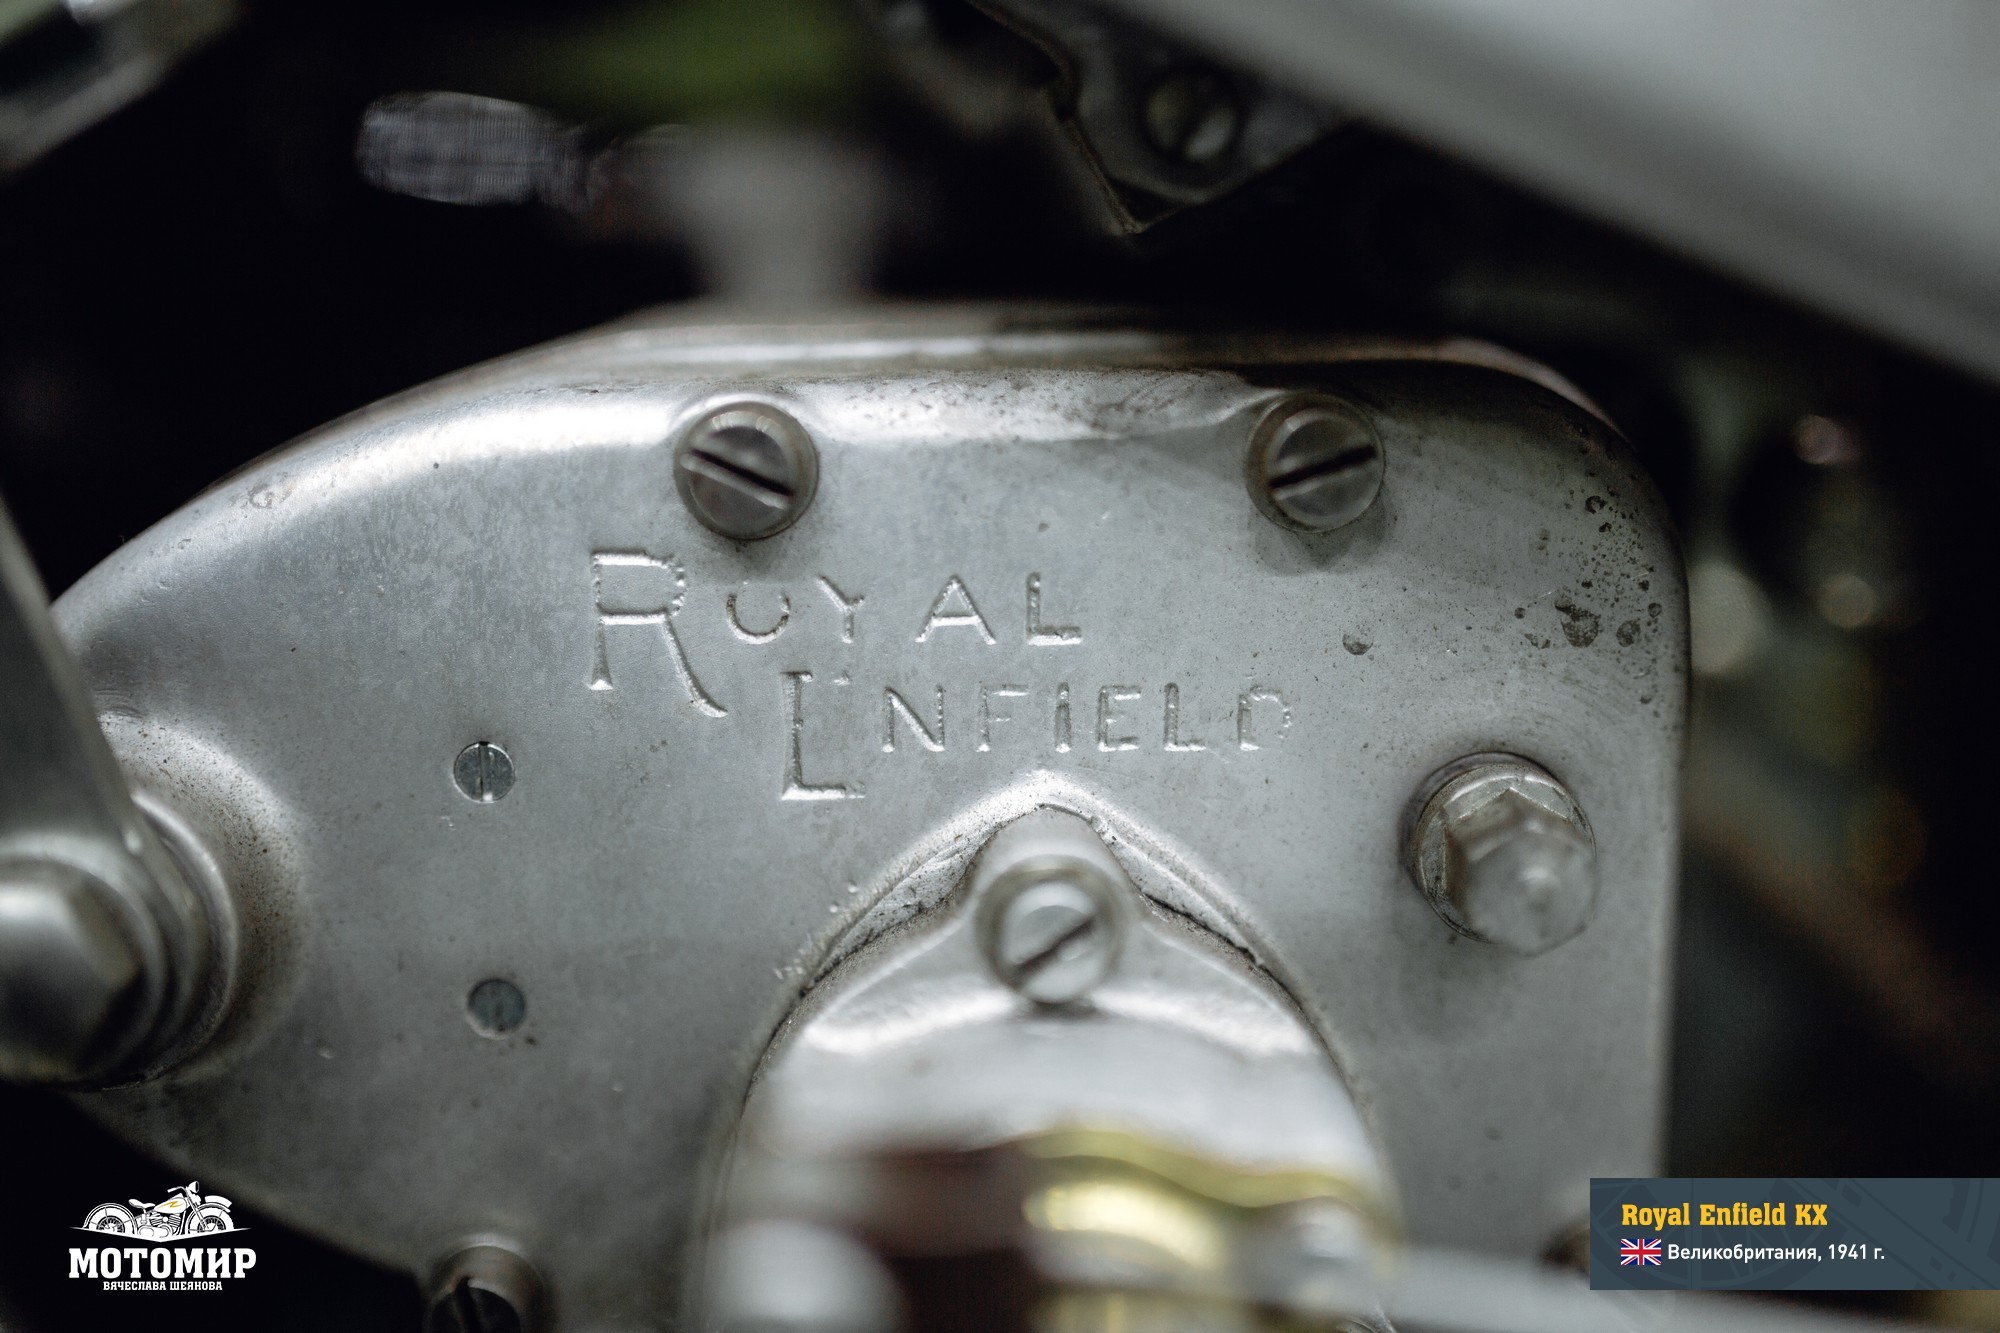 royal-enfield-kx-201601-web-39